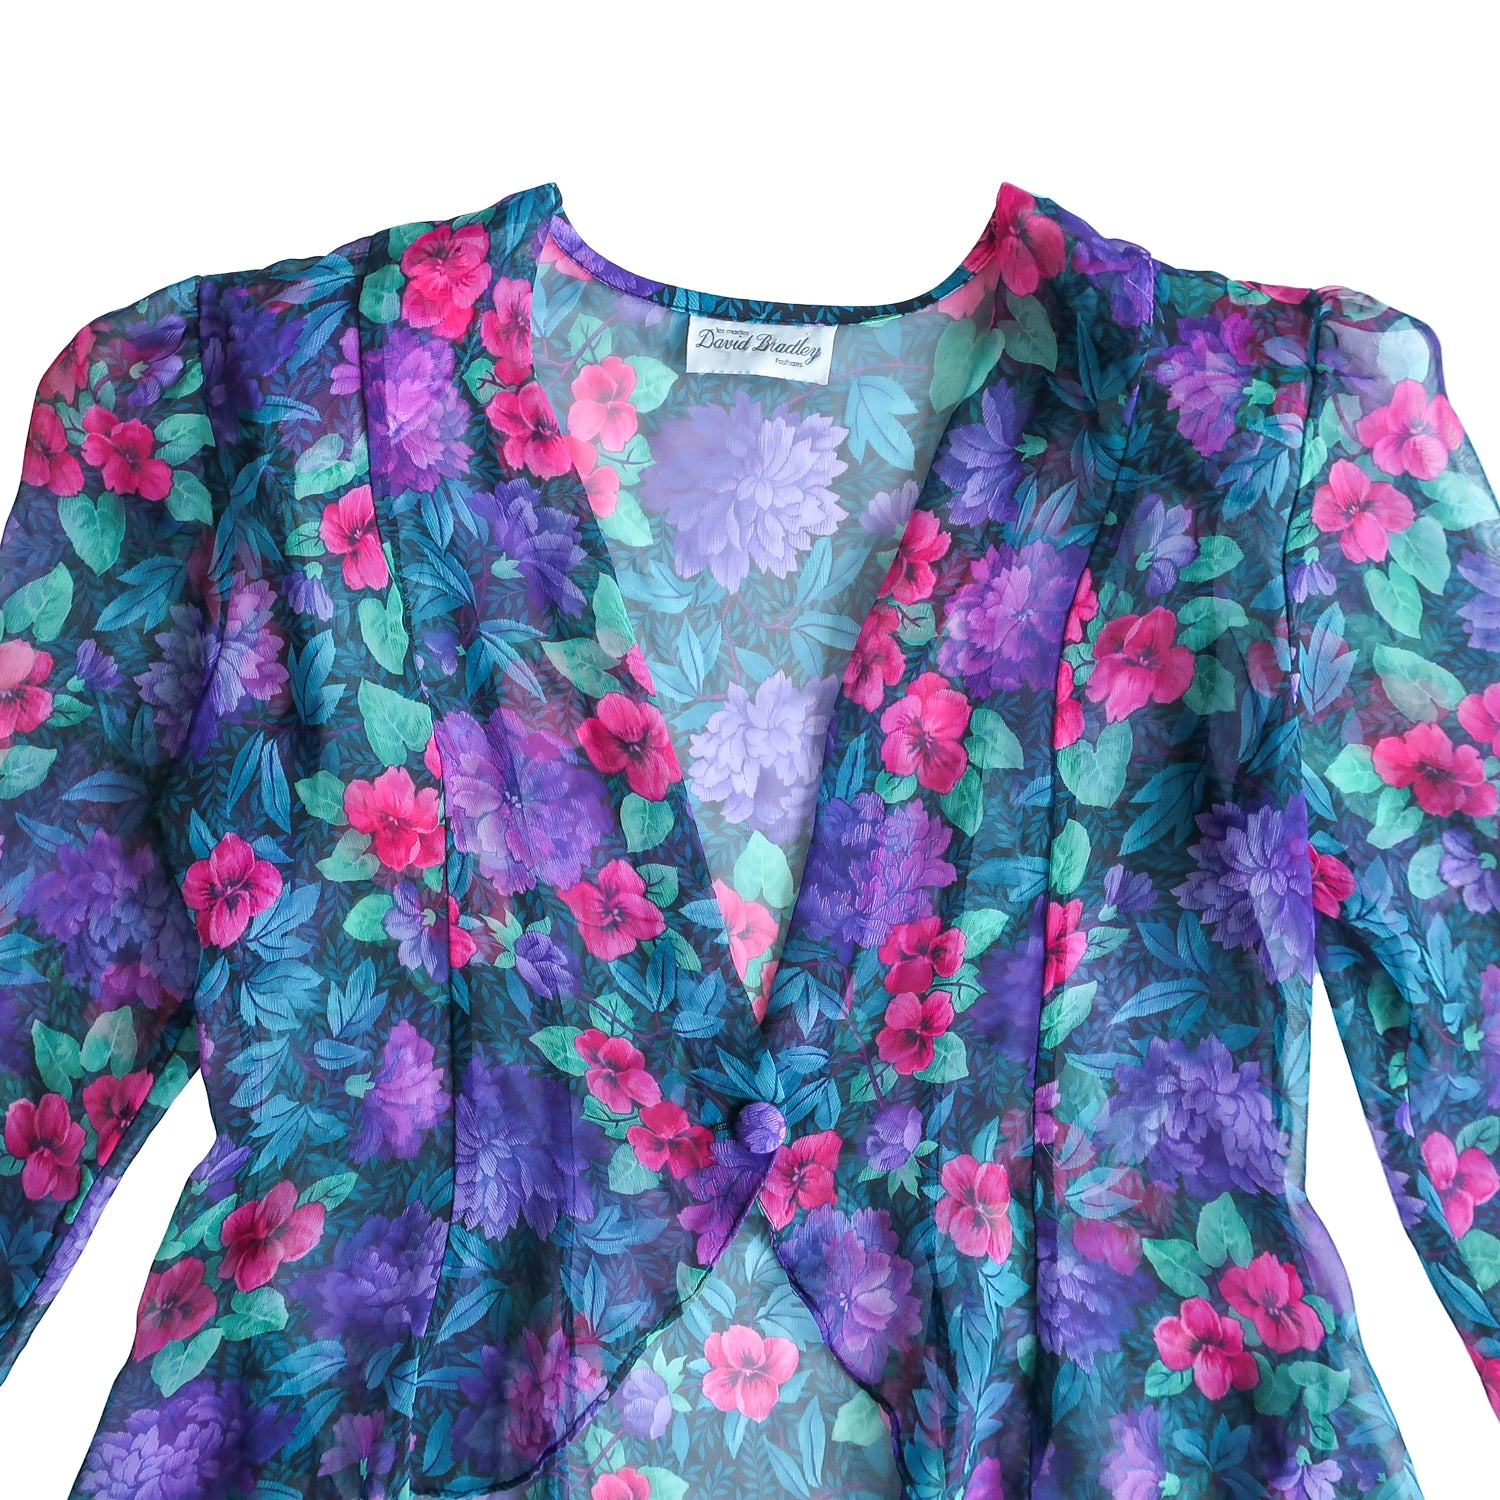 Second Room Shop Vintage. Shop Vintage, Shop Sustainable. Vintage sheer floral peplum top. This could be worn over another shirt as a sheer jacket, or by itself with just a bralette. It has one fabric covered button for closure, and shoulder pads that could be easily removed. It is cut shorter in the front, and longer in the back.